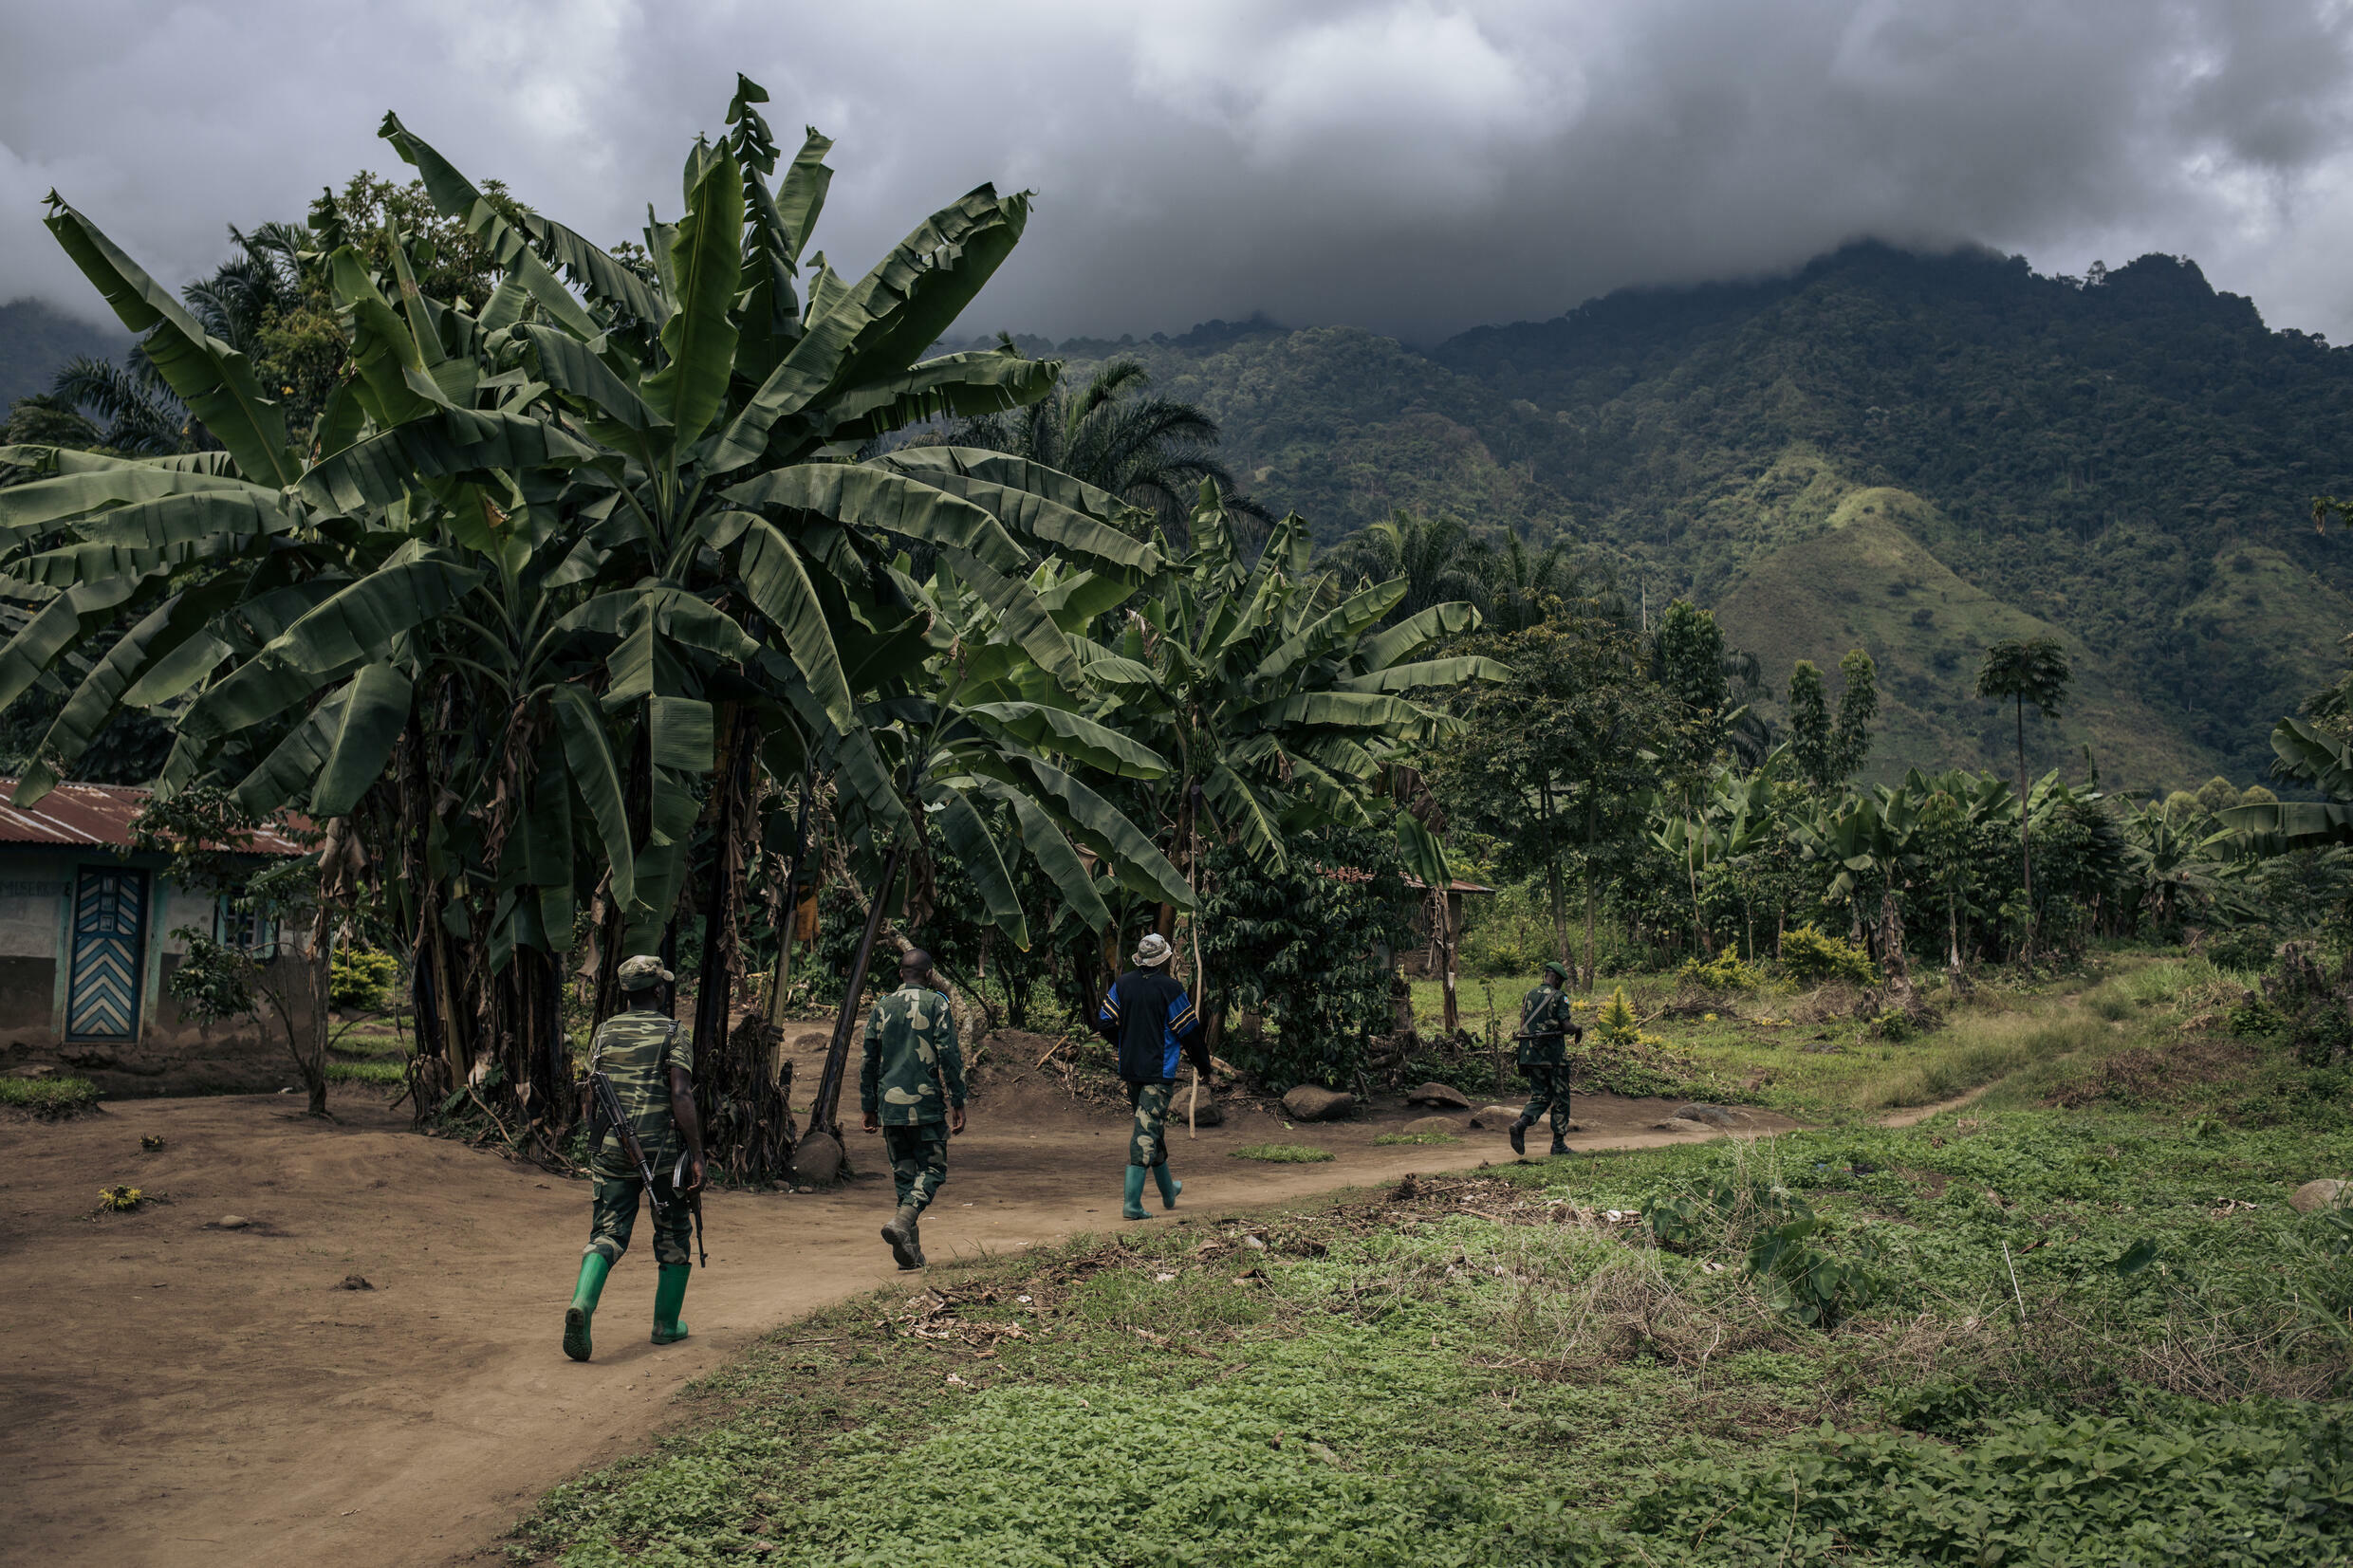 Congolese troops patrolling the village of Mwenda earlier this year. The village lies in an area that is notorious for attacks by the Allied Democratic Forces (ADF)